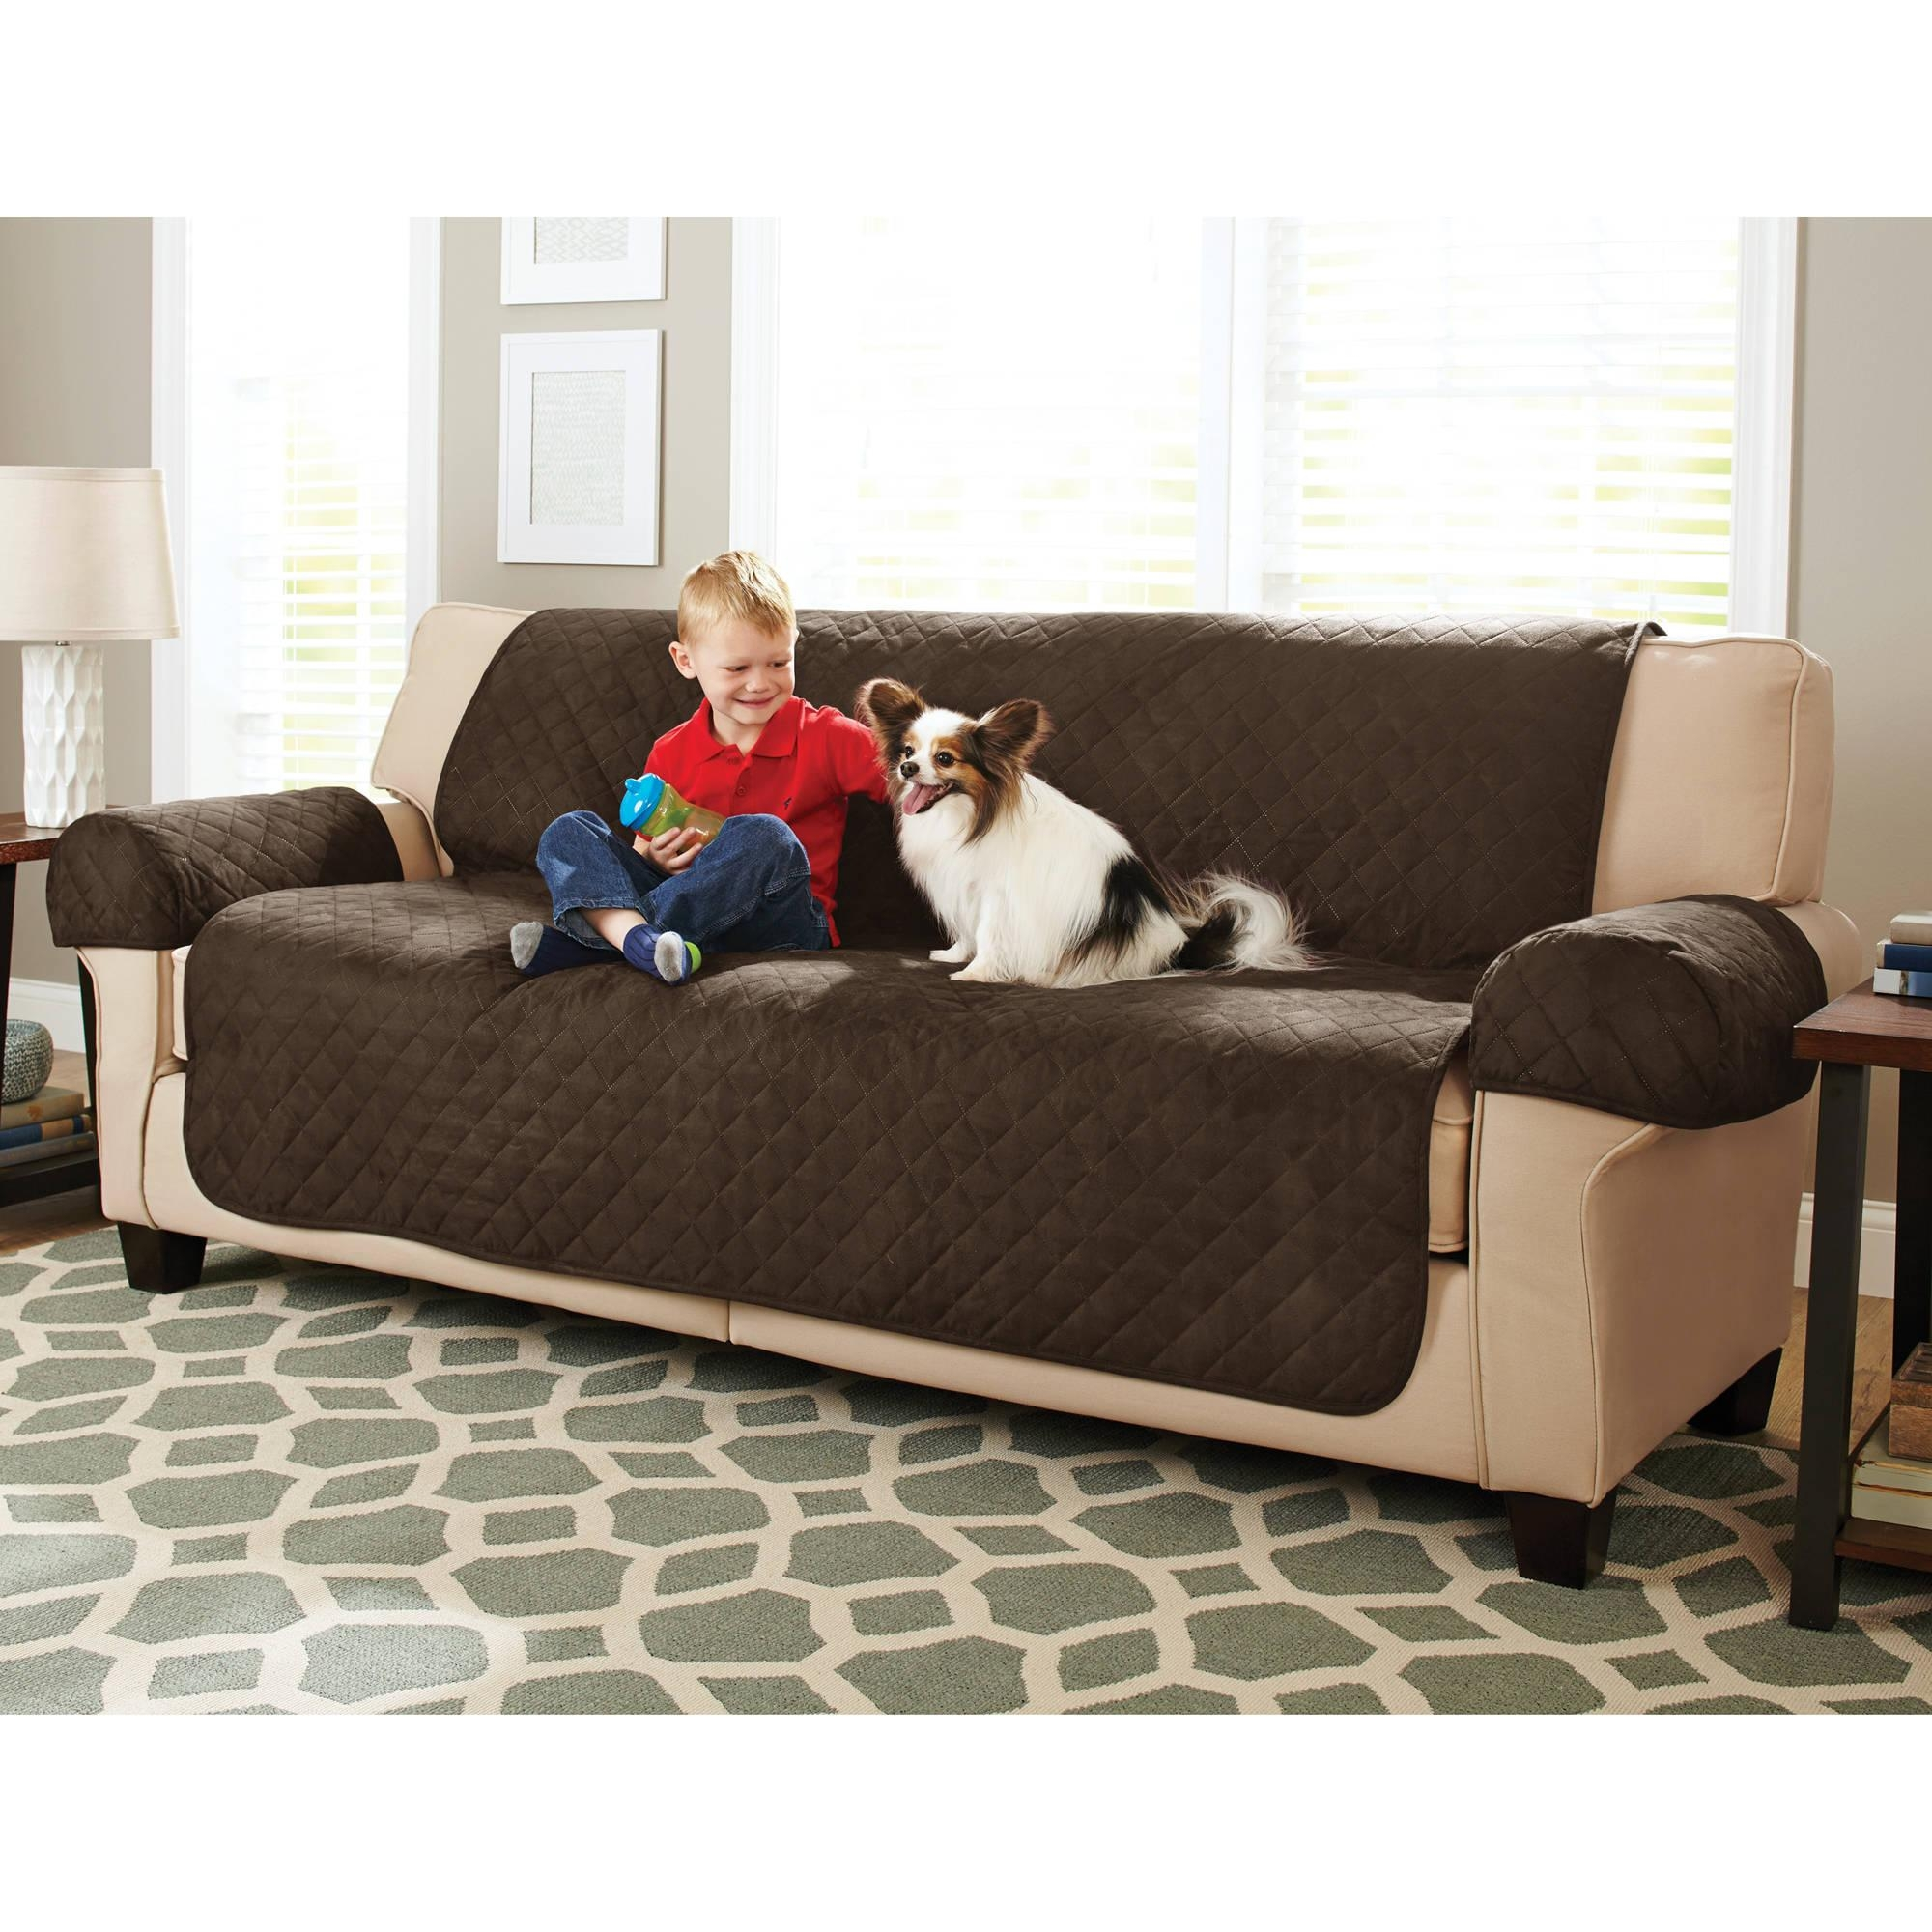 Better Homes And Gardens Waterproof Non Slip Faux Suede Pet Inside Dog Sofas And Chairs (View 7 of 20)